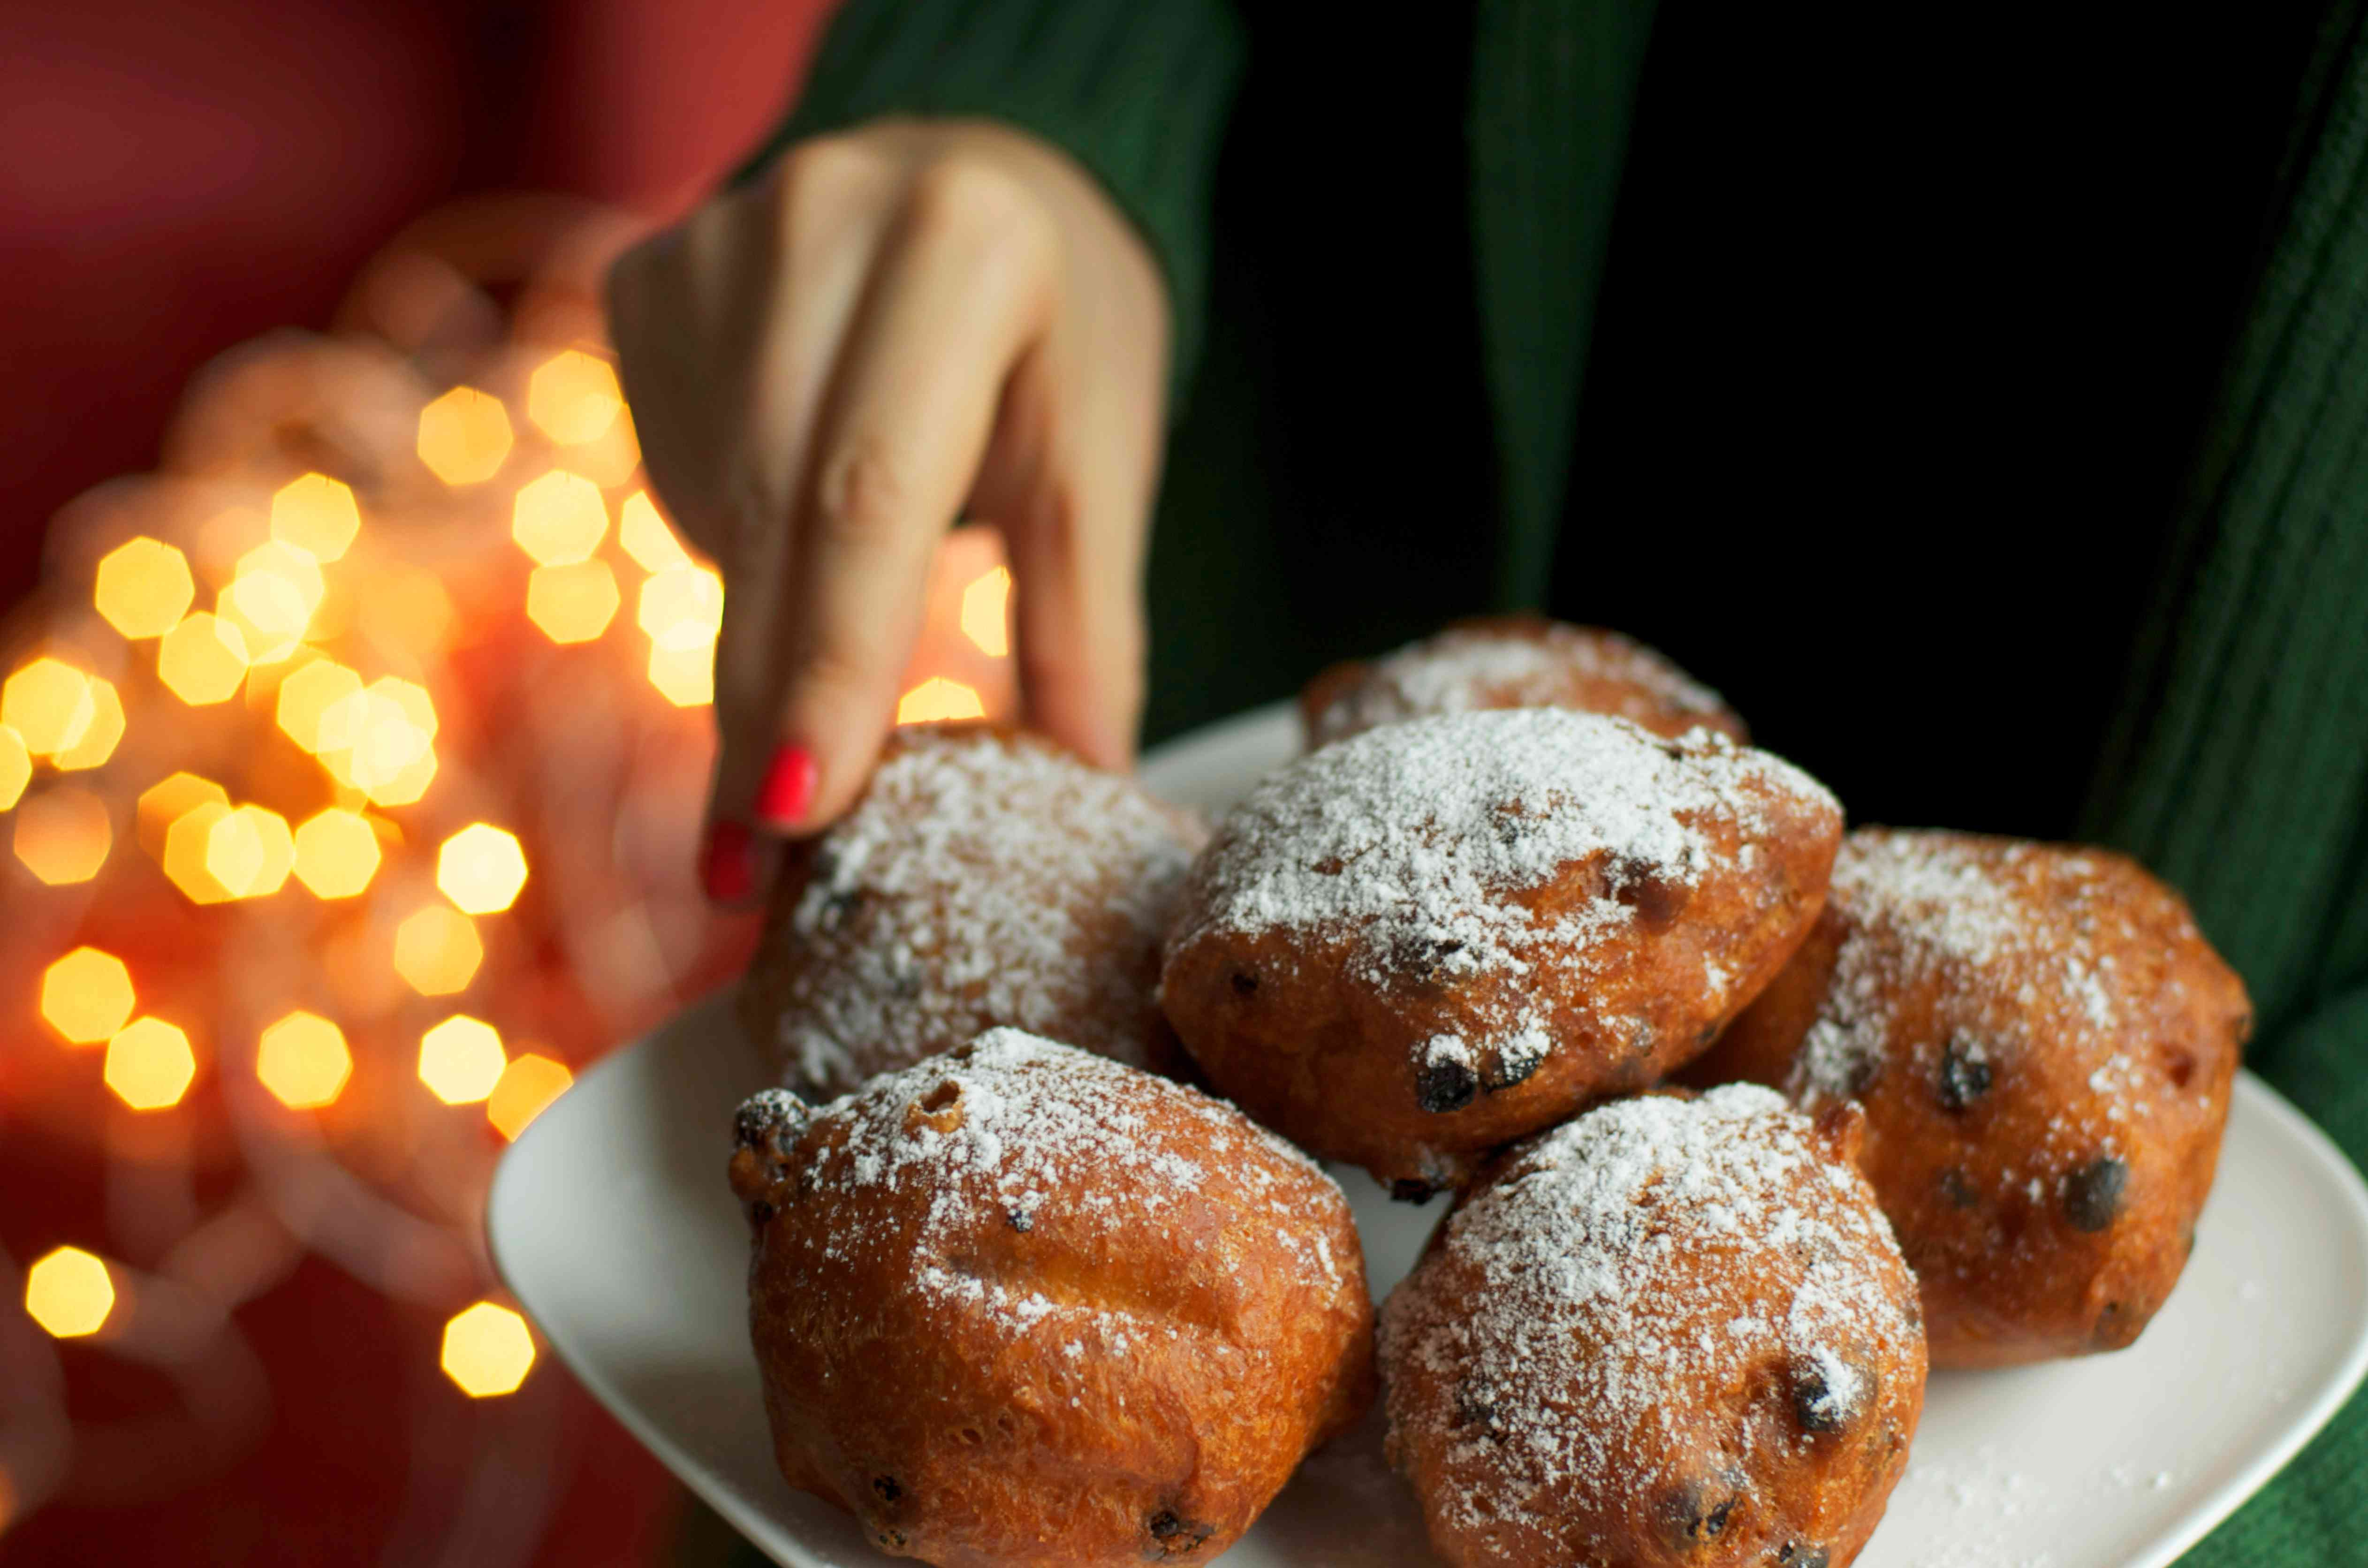 Traditional dutch oliebollen donuts oliebollen. A woman picking one donut, bokeh lights background